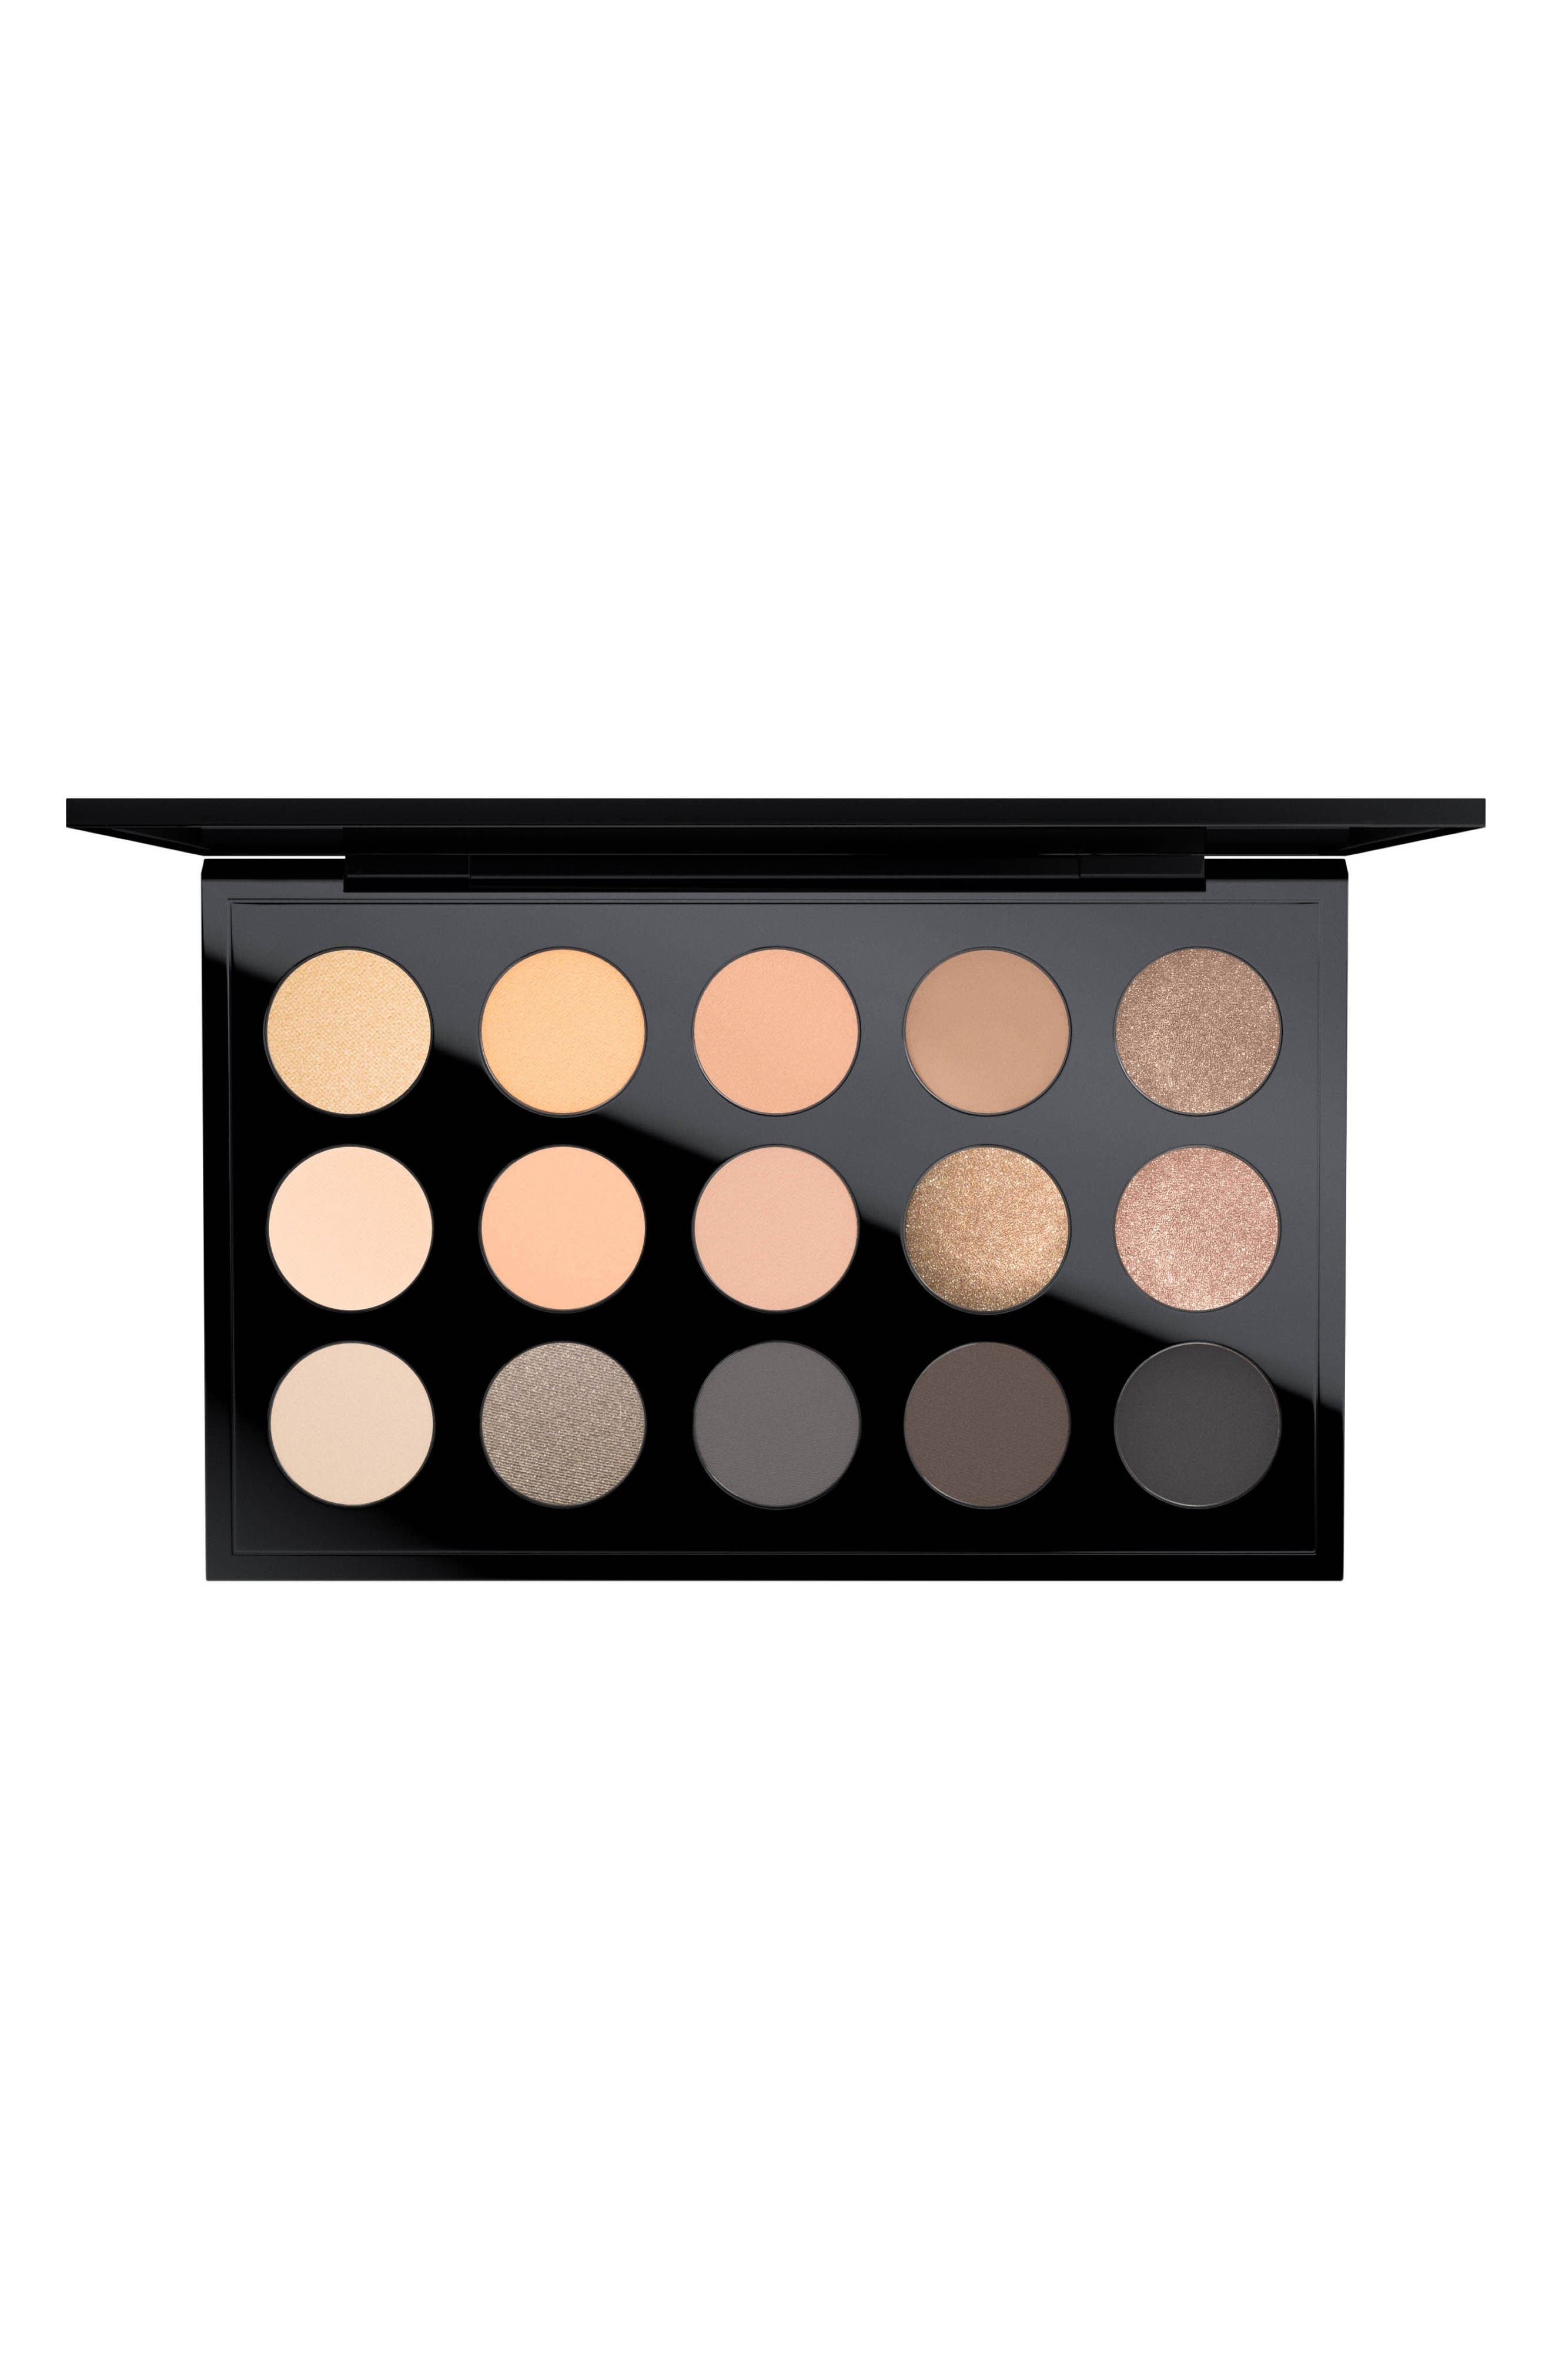 MAC In the Flesh Times 15 Eyeshadow Palette,                         Main,                         color, In The Flesh